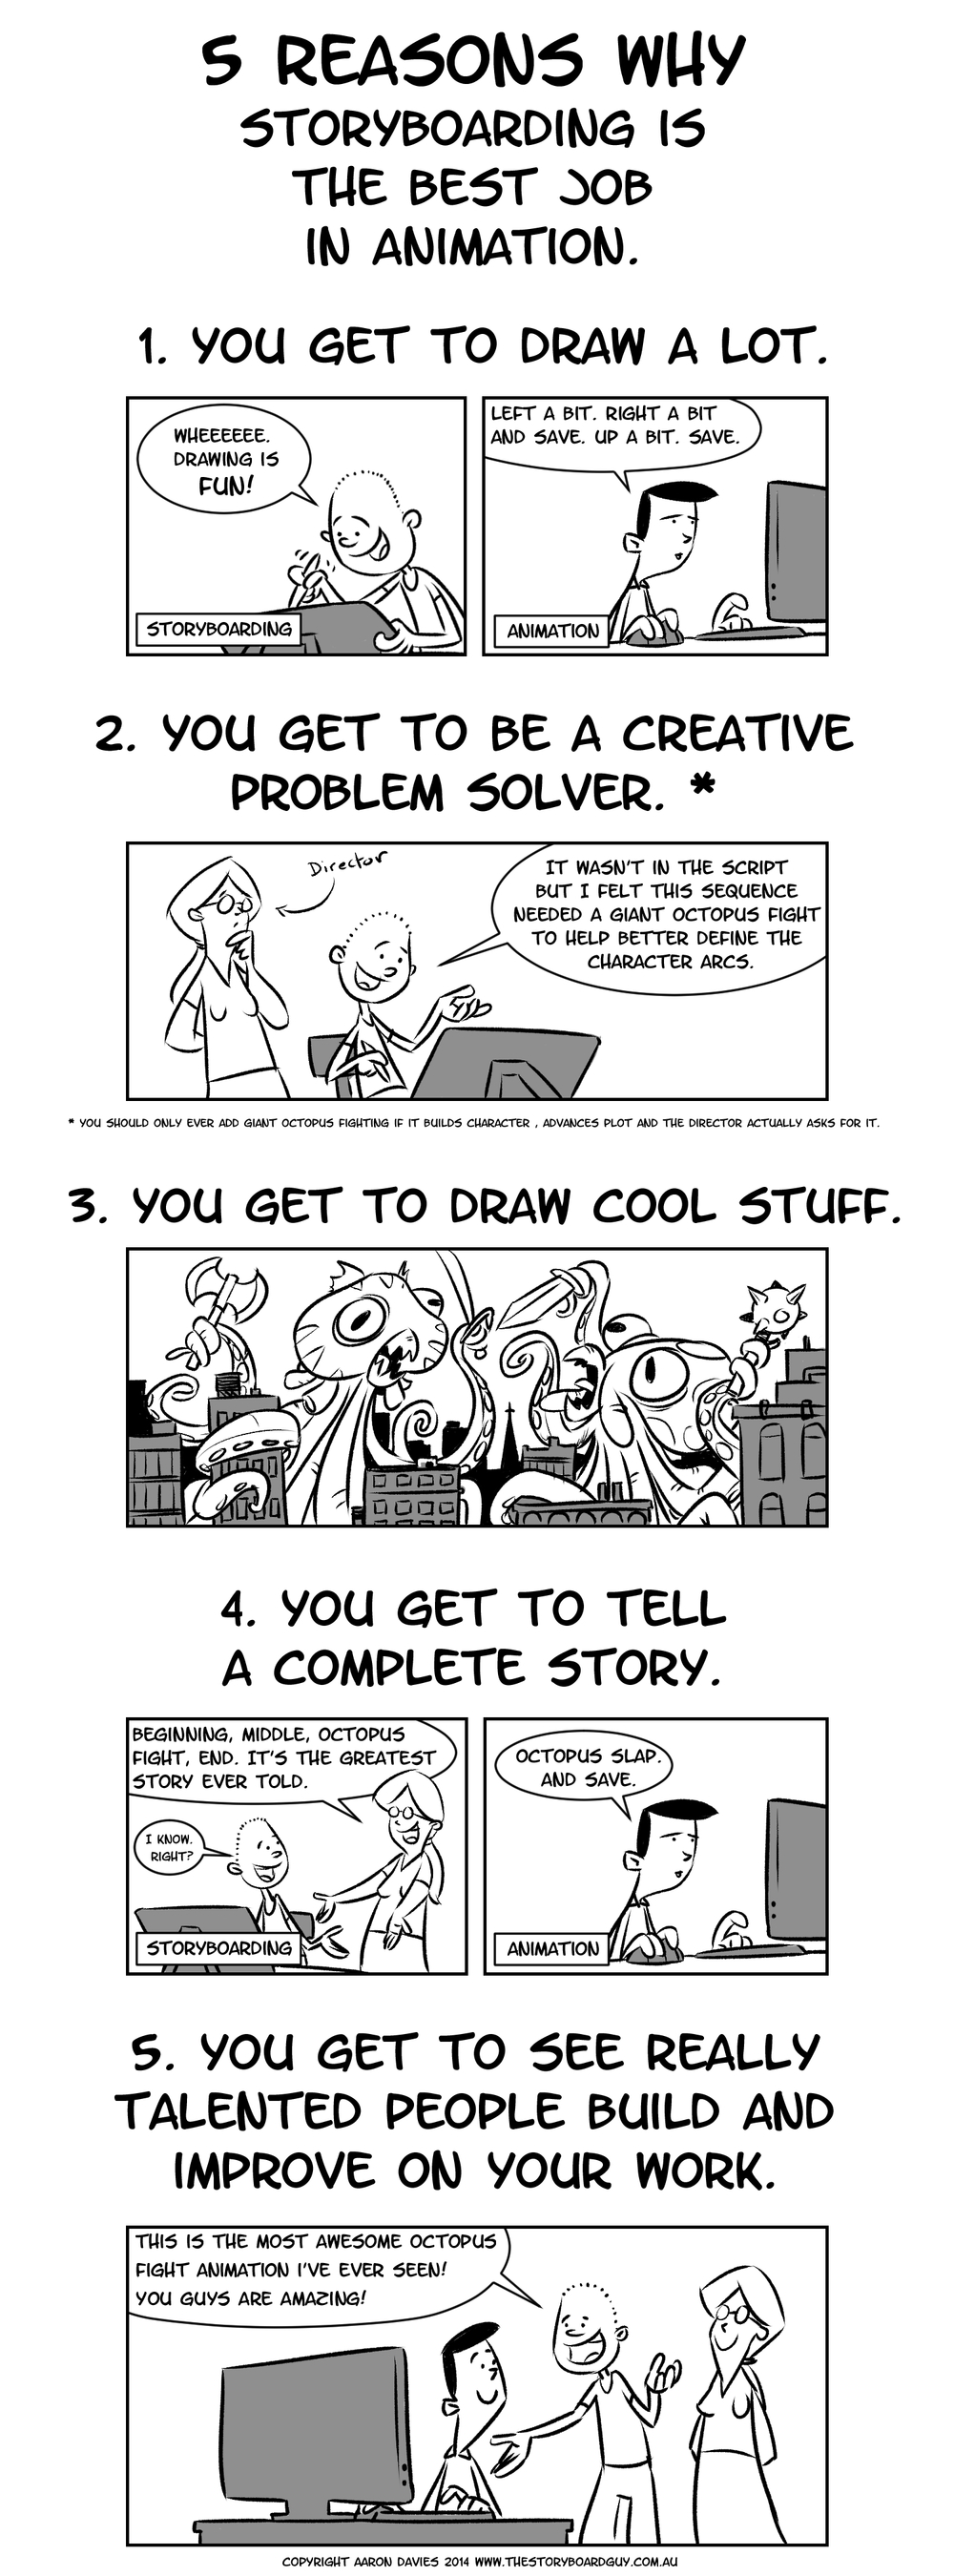 5 reasons storyboarding is the best